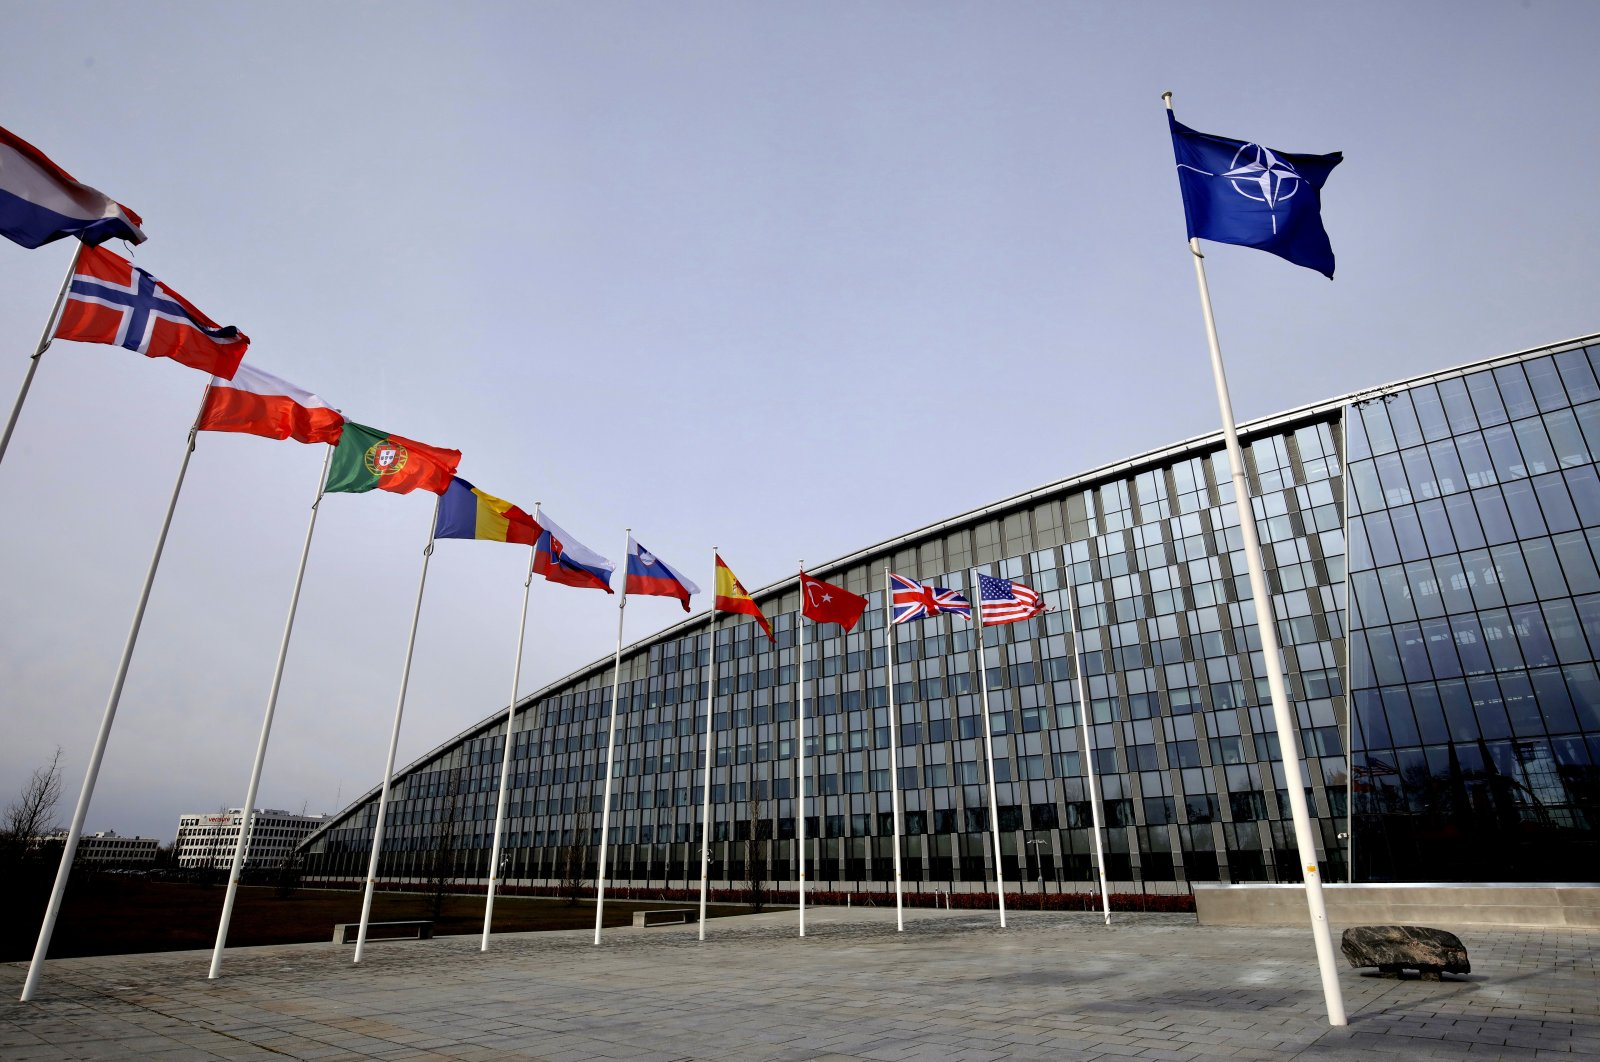 The flags of NATO member states flap in the wind outside NATO headquarters in Brussels, Belgium, Feb. 28, 2020. (AP Photo)